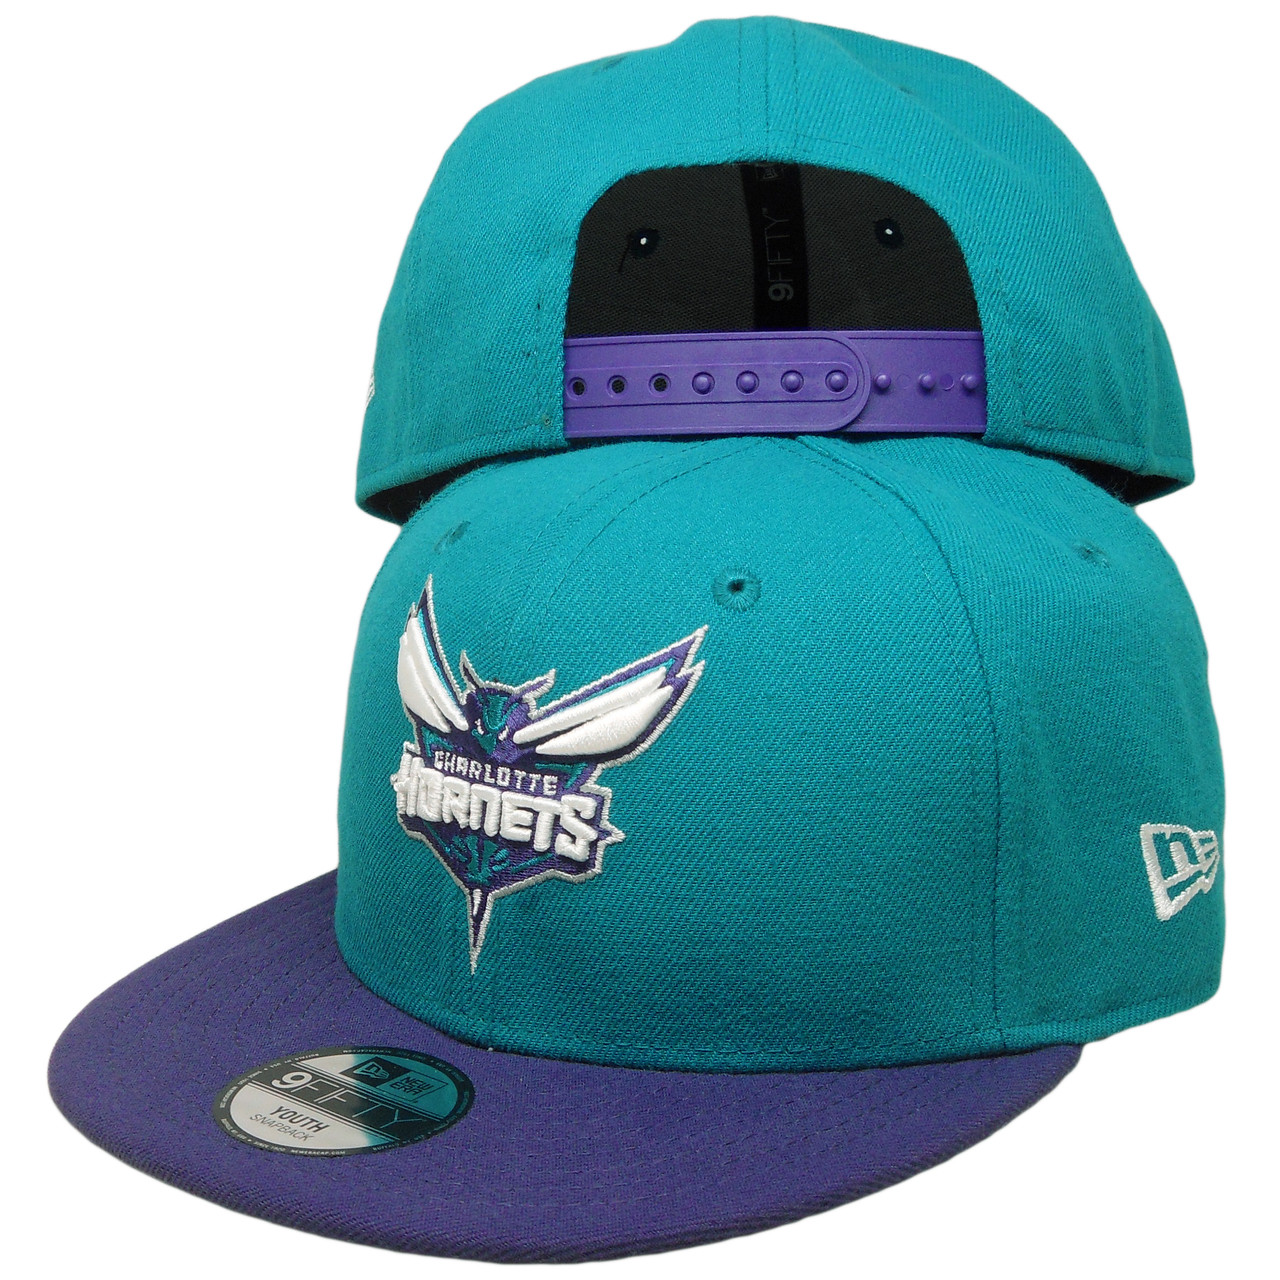 Charlotte Hornets Blue Neon Yellow New Era 59Fifty Fitted Hat